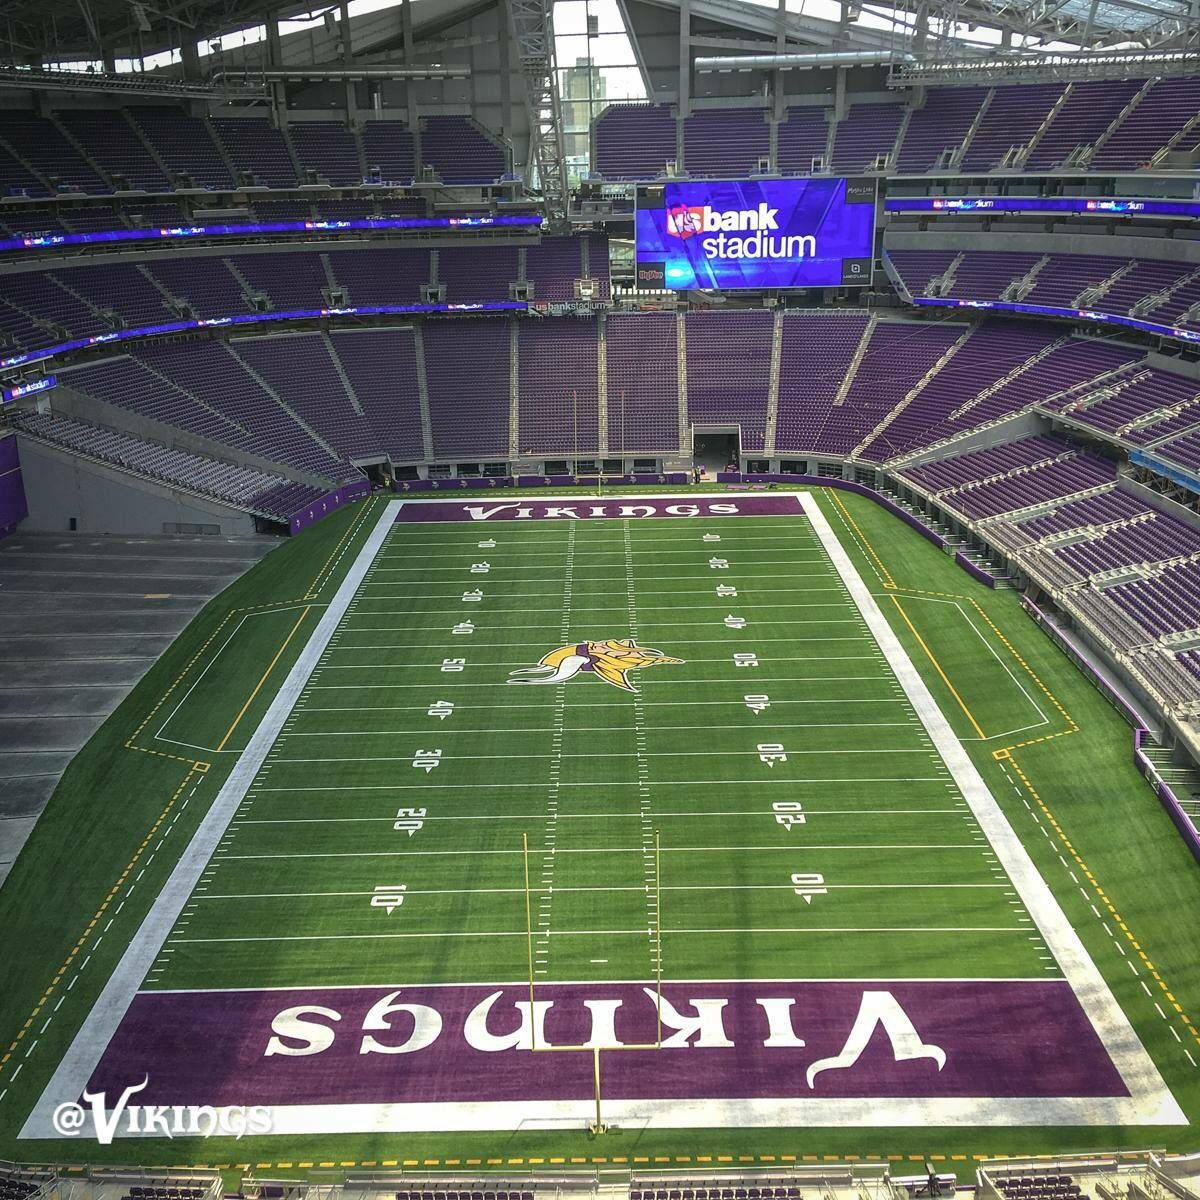 Go to a Vikings game an absolute must. Minnesota